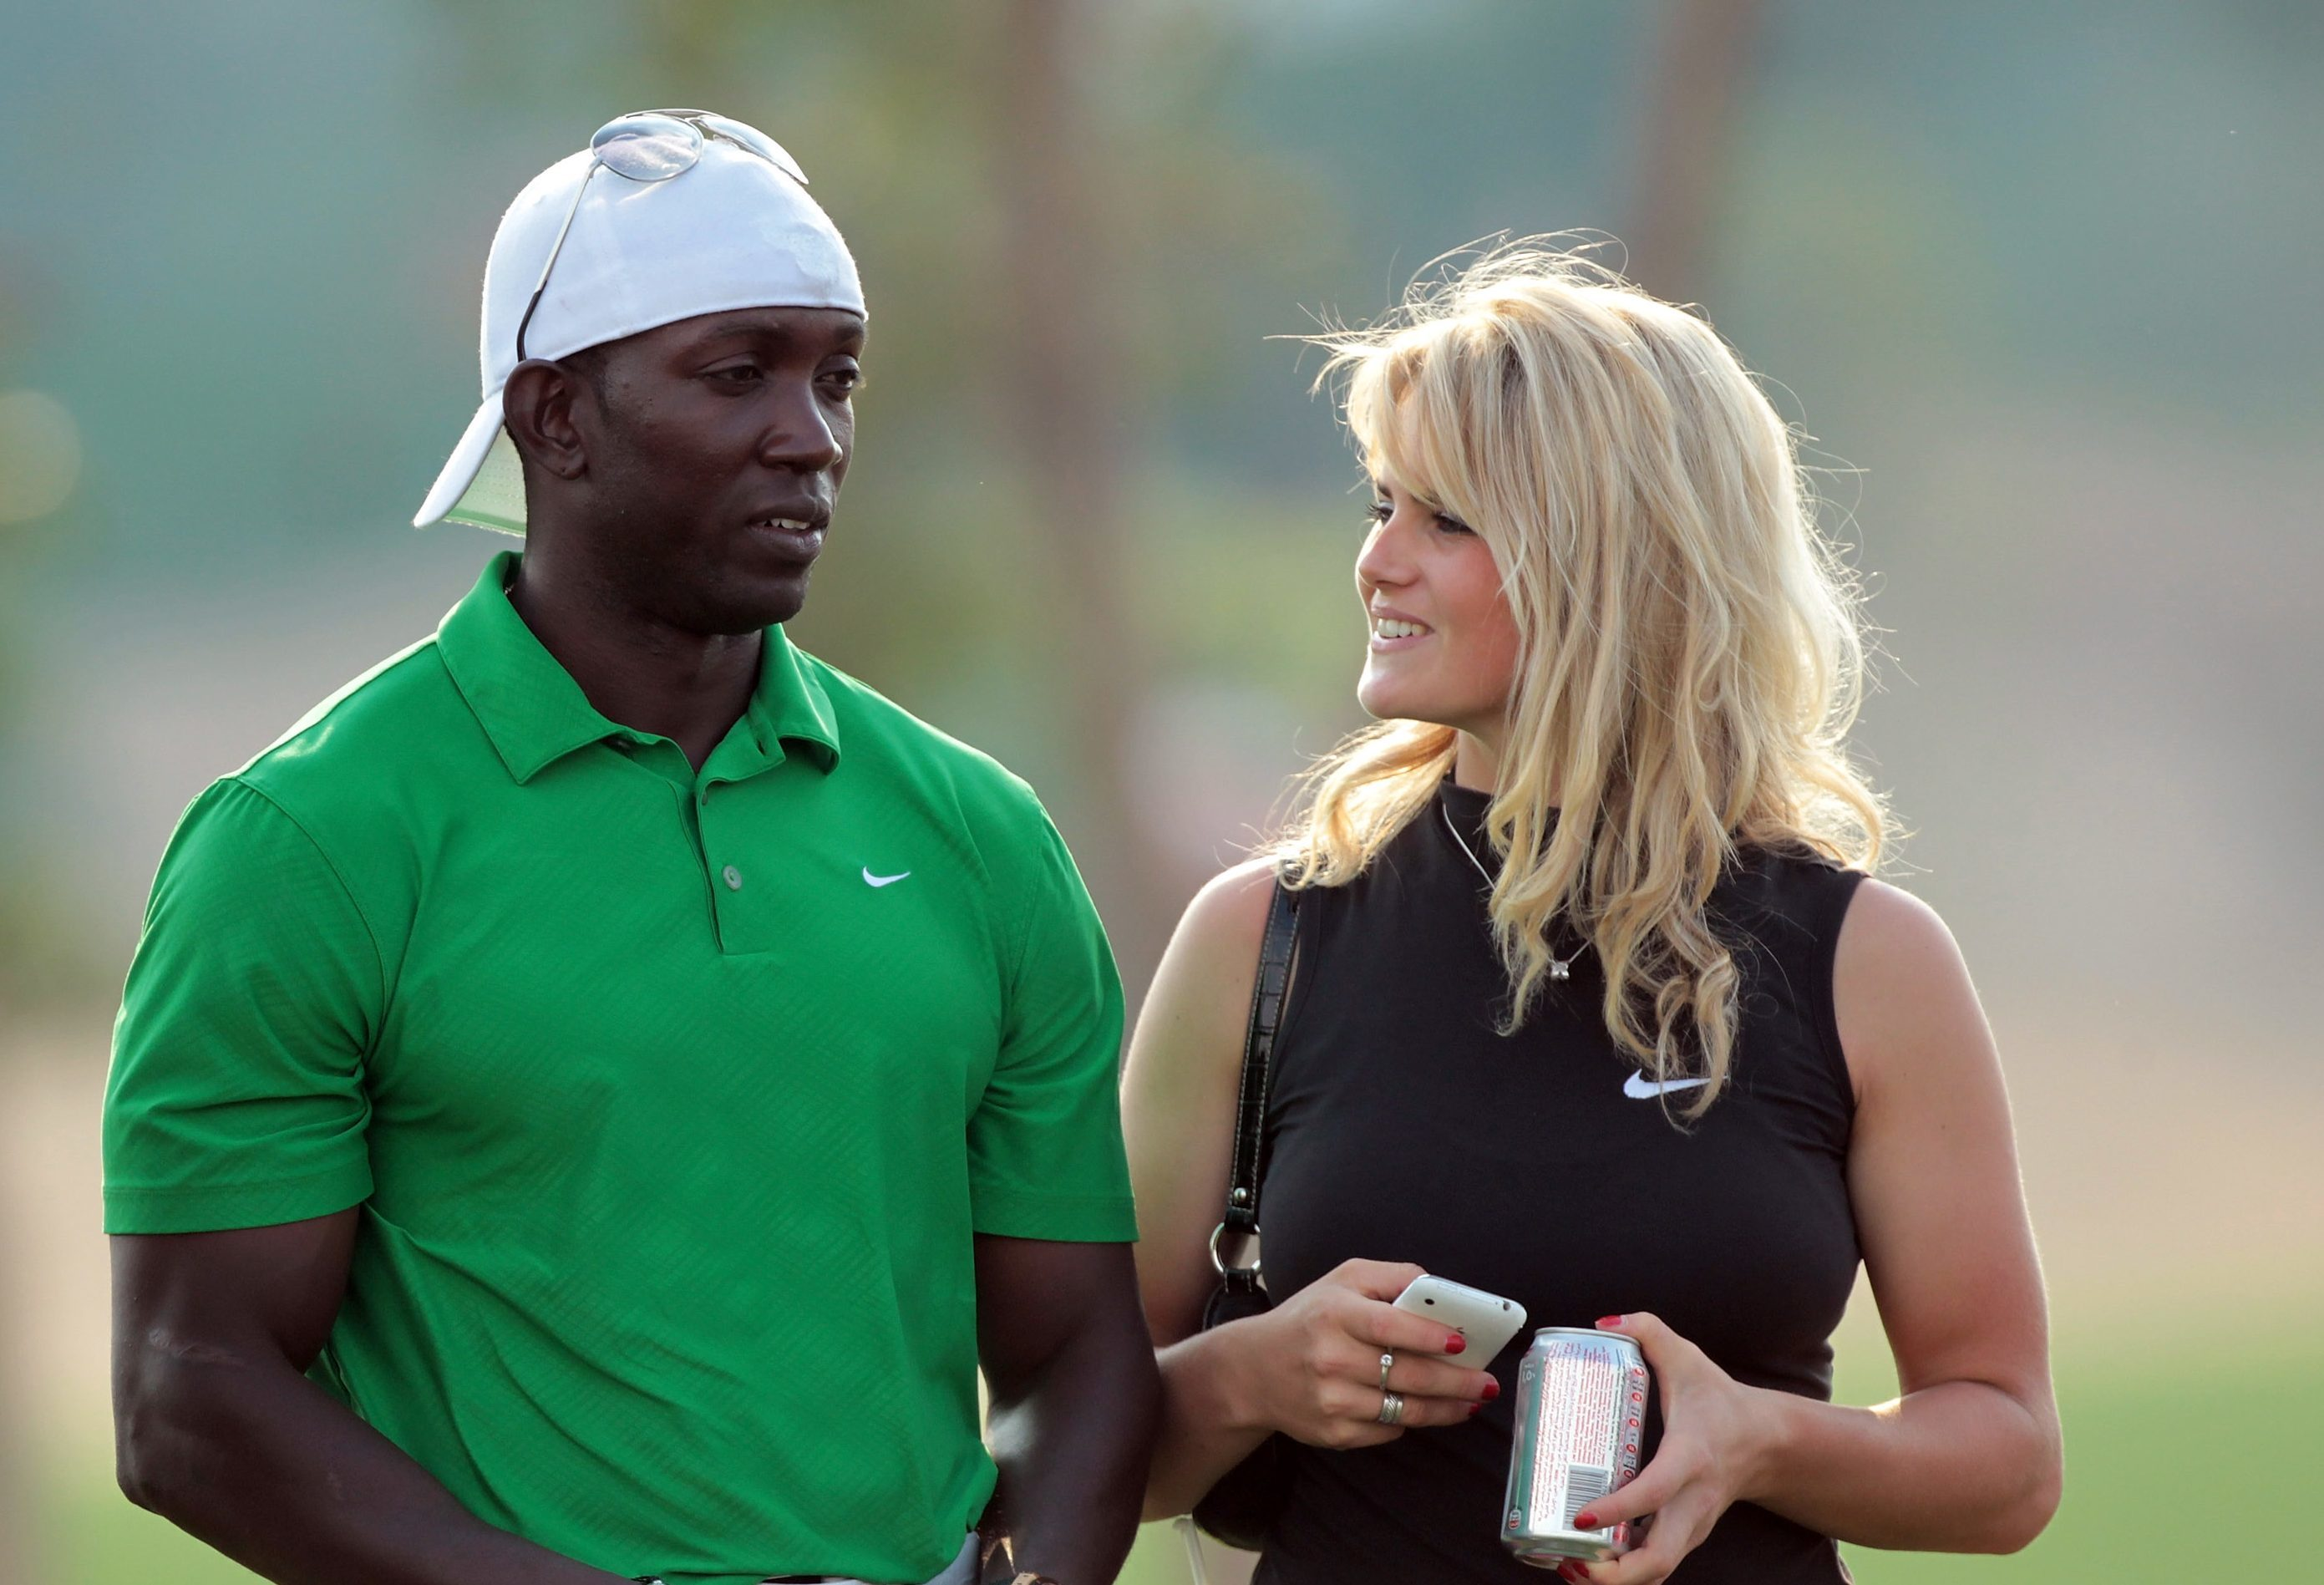 Carly Booth with Dwight Yorke.